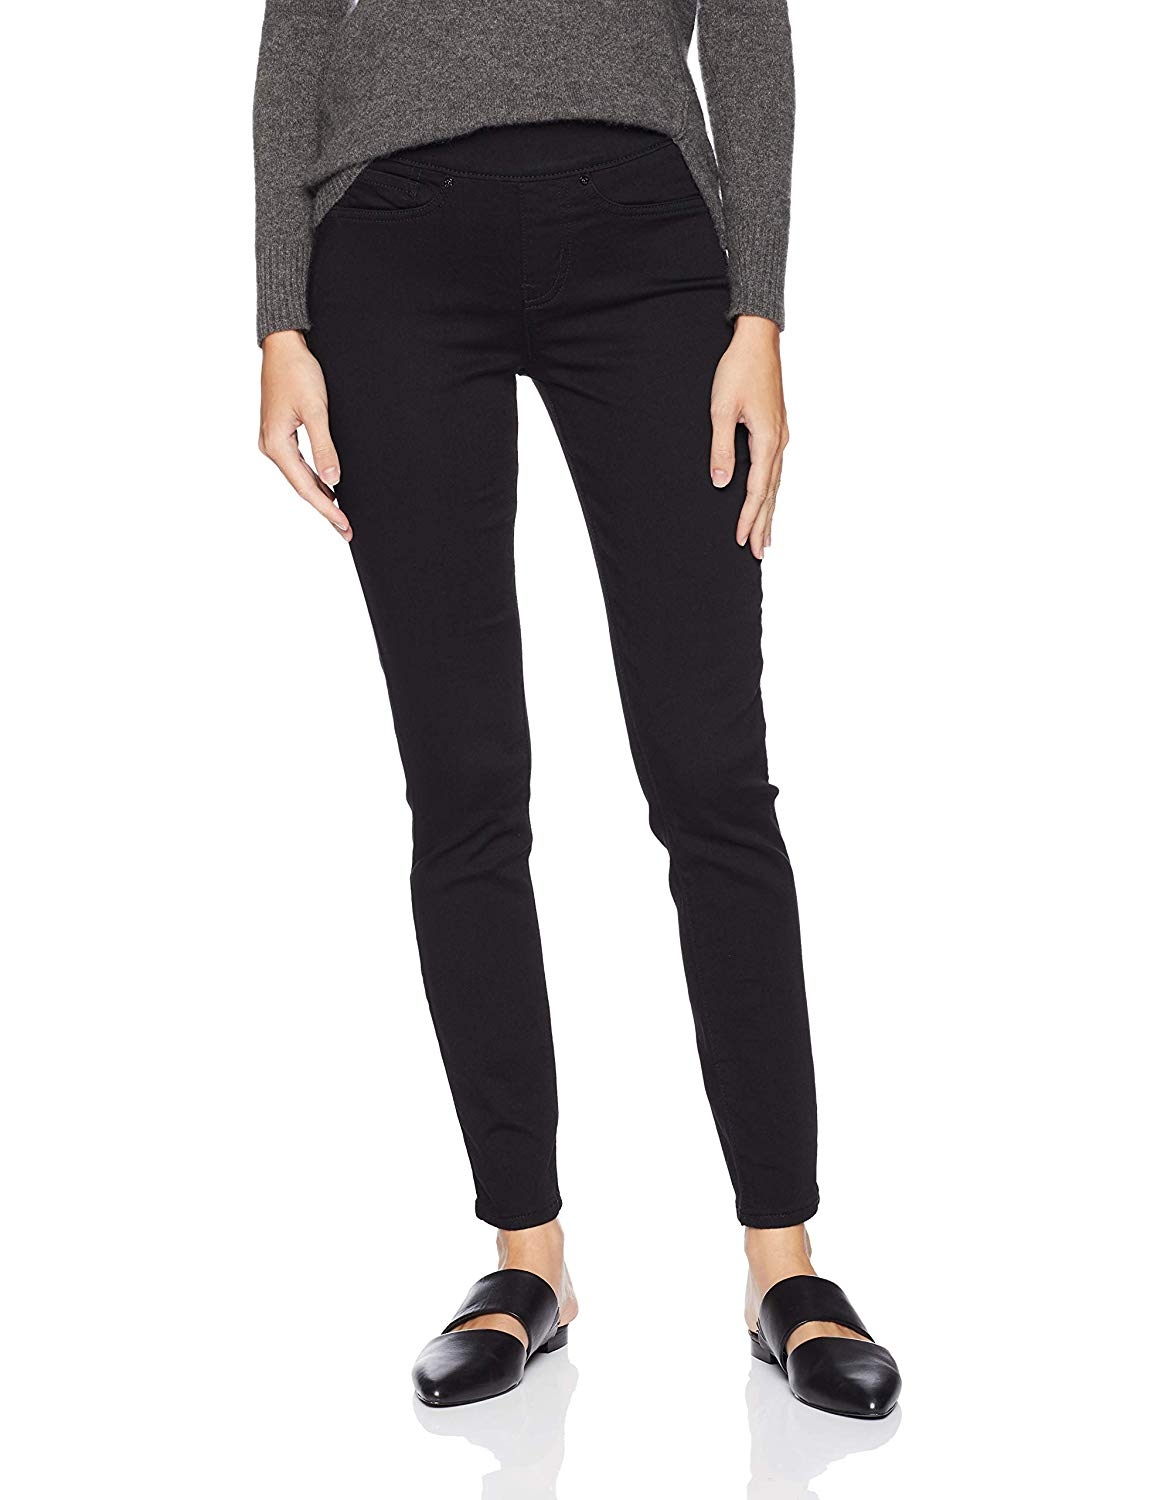 7513b6a0eb580 Details about Levi s Signature Gold By Levi Strauss Women Stretch Skinny  Totally Shaping Jeans